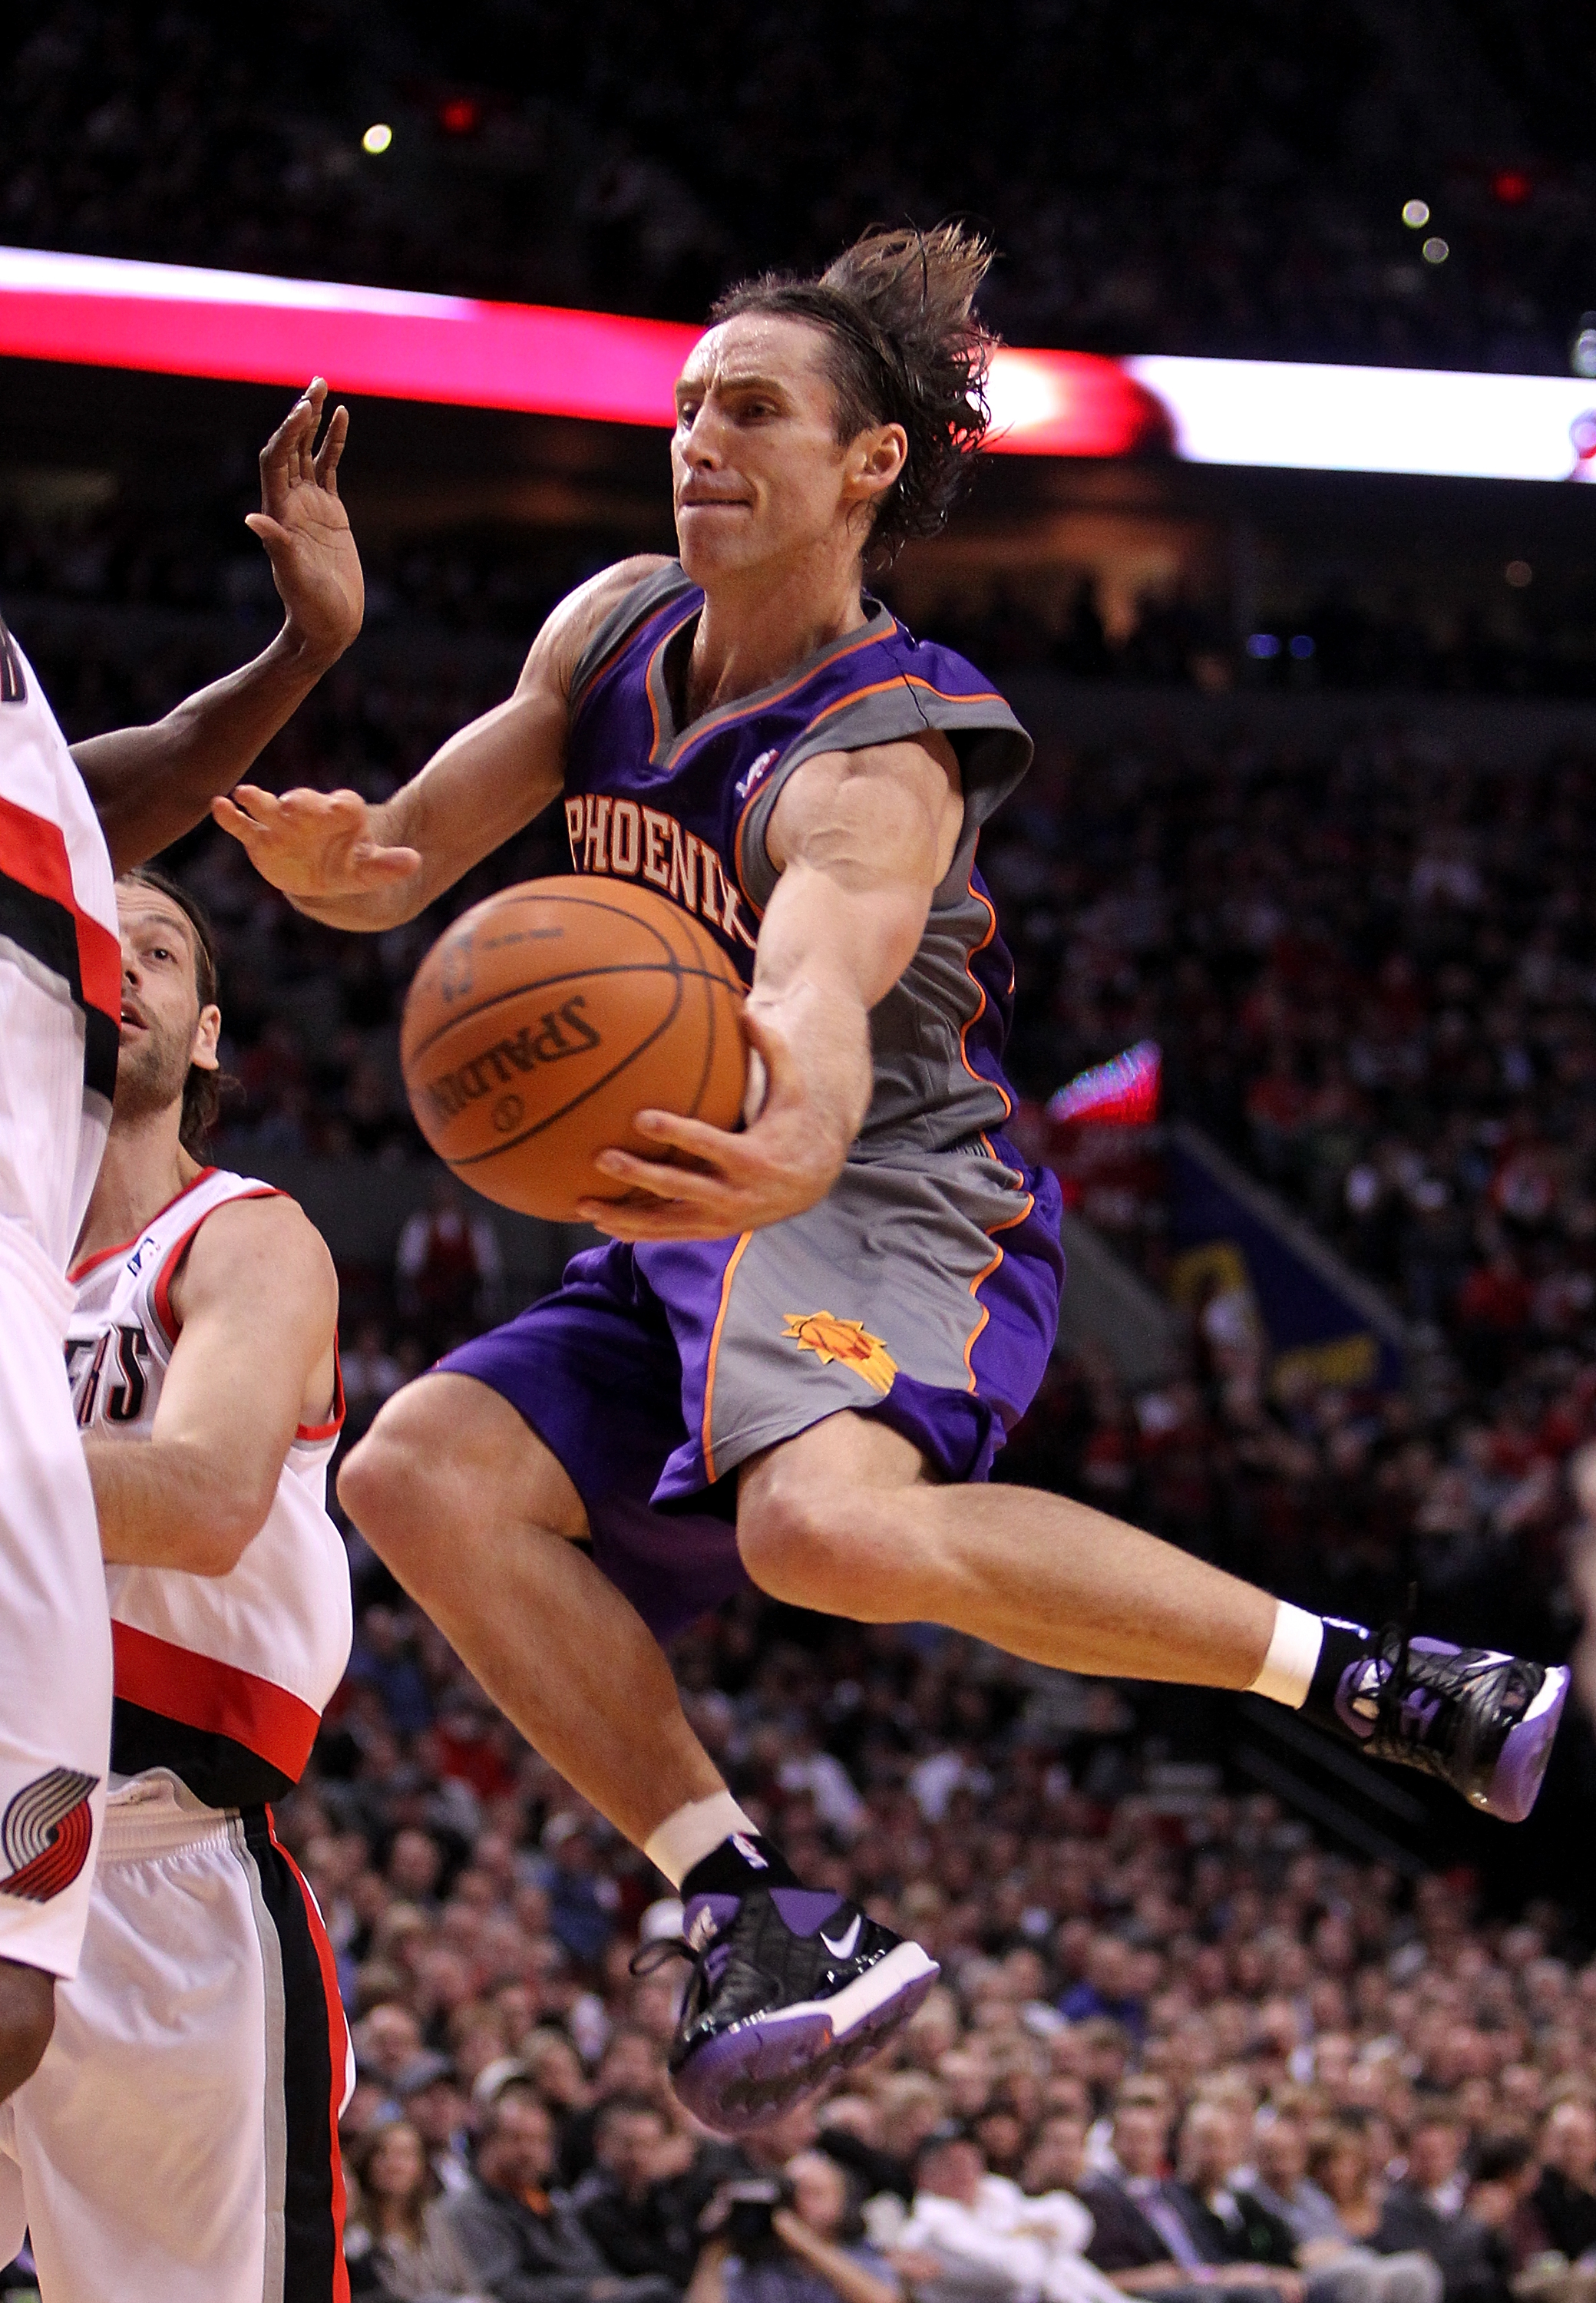 PORTLAND, OR - OCTOBER 26:  Steve Nash #13 of the Phoenix Suns drives with the ball agianst the Portland Trail Blazers on October 26, 2010 at the Rose Garden in Portland, Oregon.  NOTE TO USER: User expressly acknowledges and agrees that, by downloading a